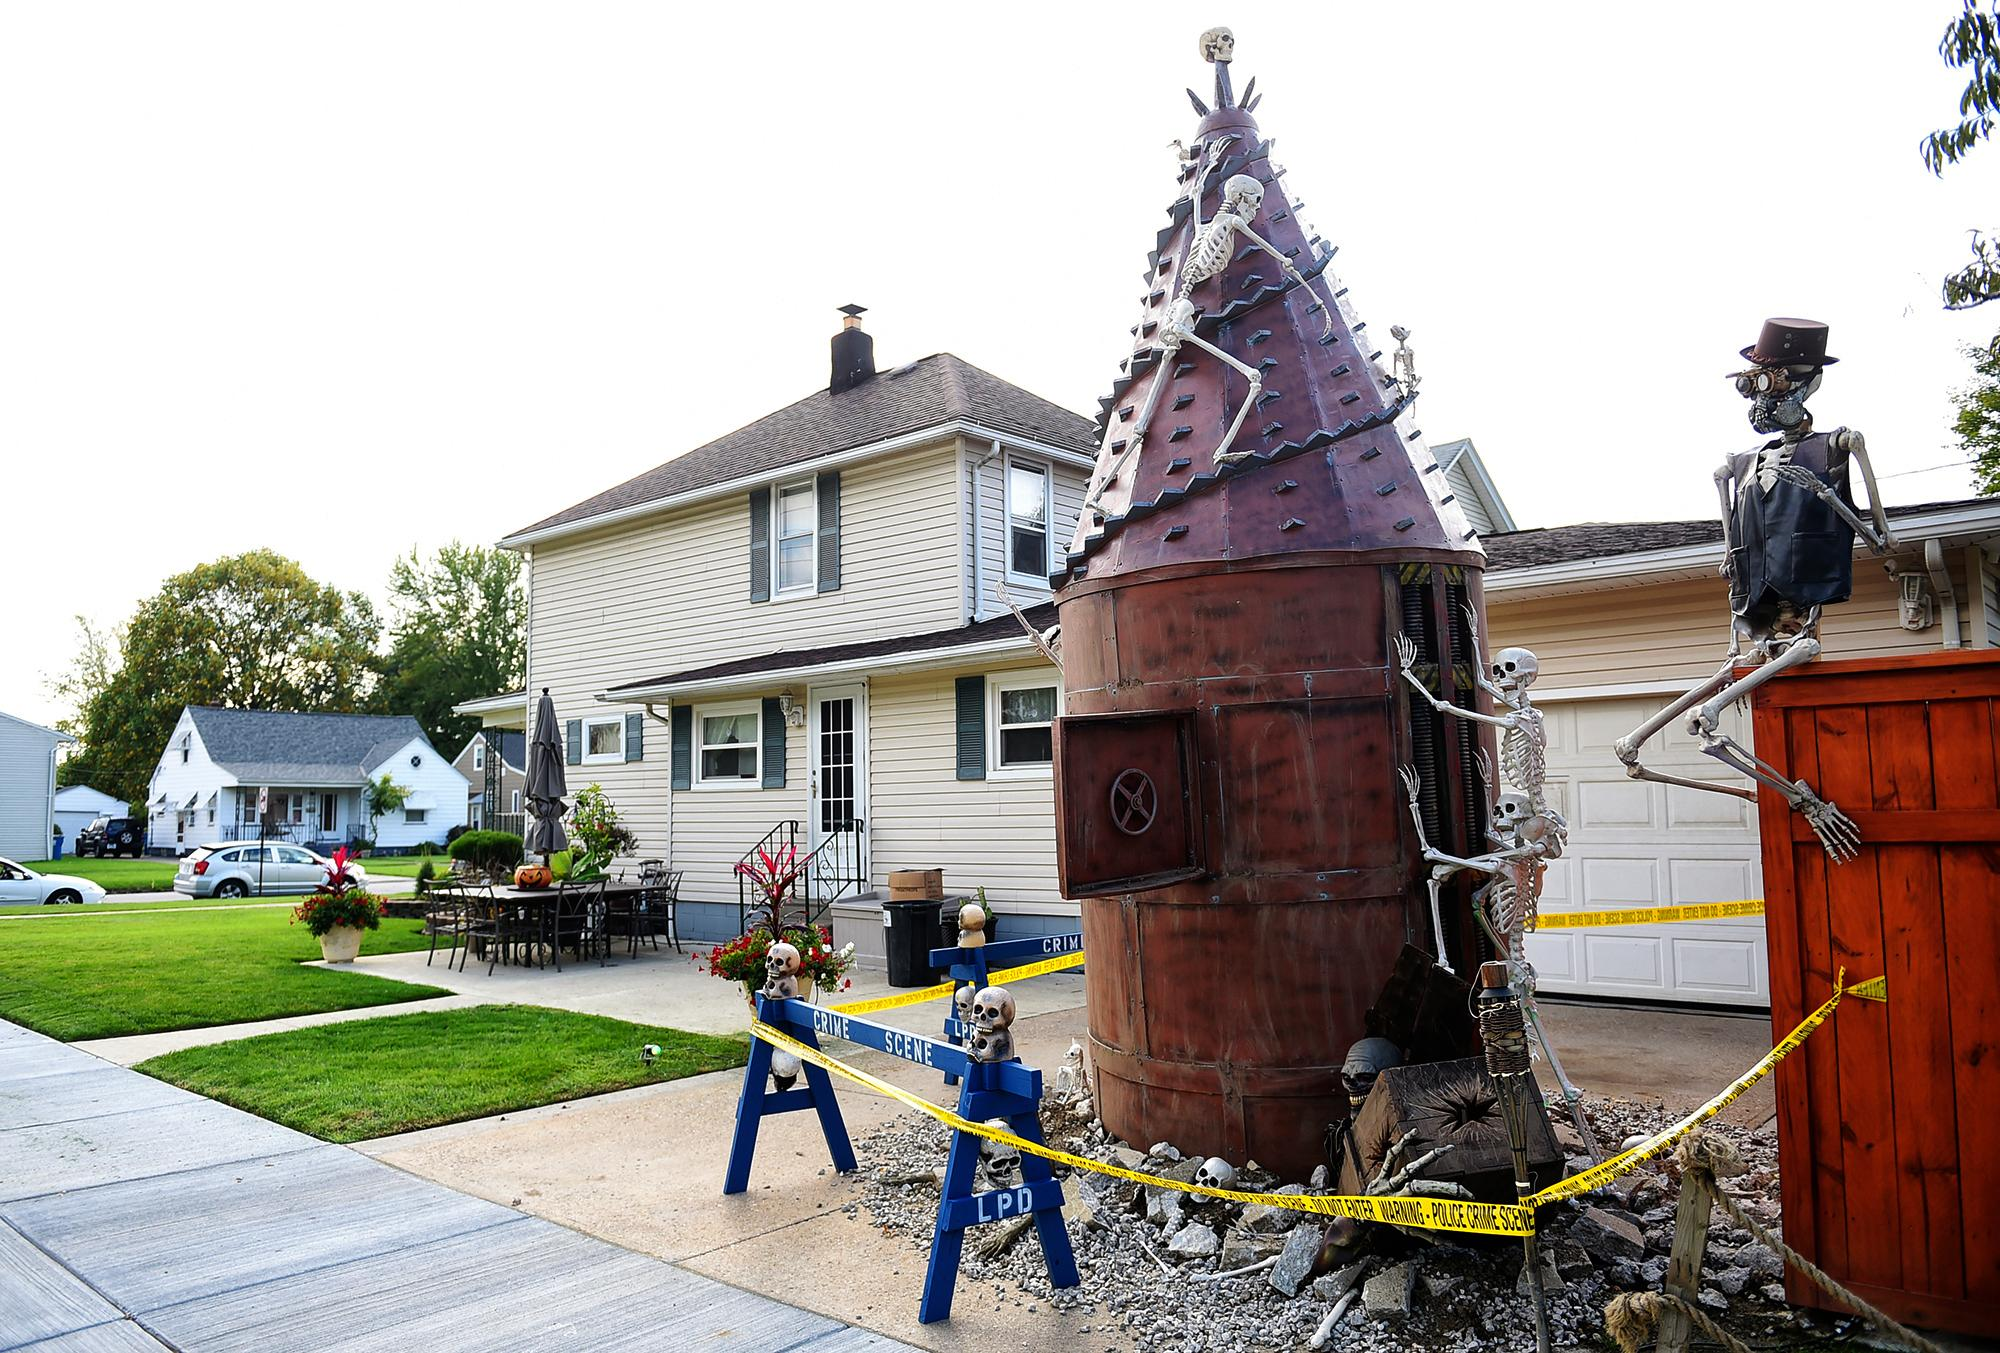 In an Oct.12, 2017 photo, Ricky and Marlene Rodriguez's home at the corner of 30th St. and Tacoma Ave., in Lorain, Ohio, has morphed from a pirate ship, to a train and now into a digging machine poking through the home's driveway. The home is an annual attraction for neighbors and passersby within the city.  (Kristin Bauer/Chronicle-Telegram via AP)